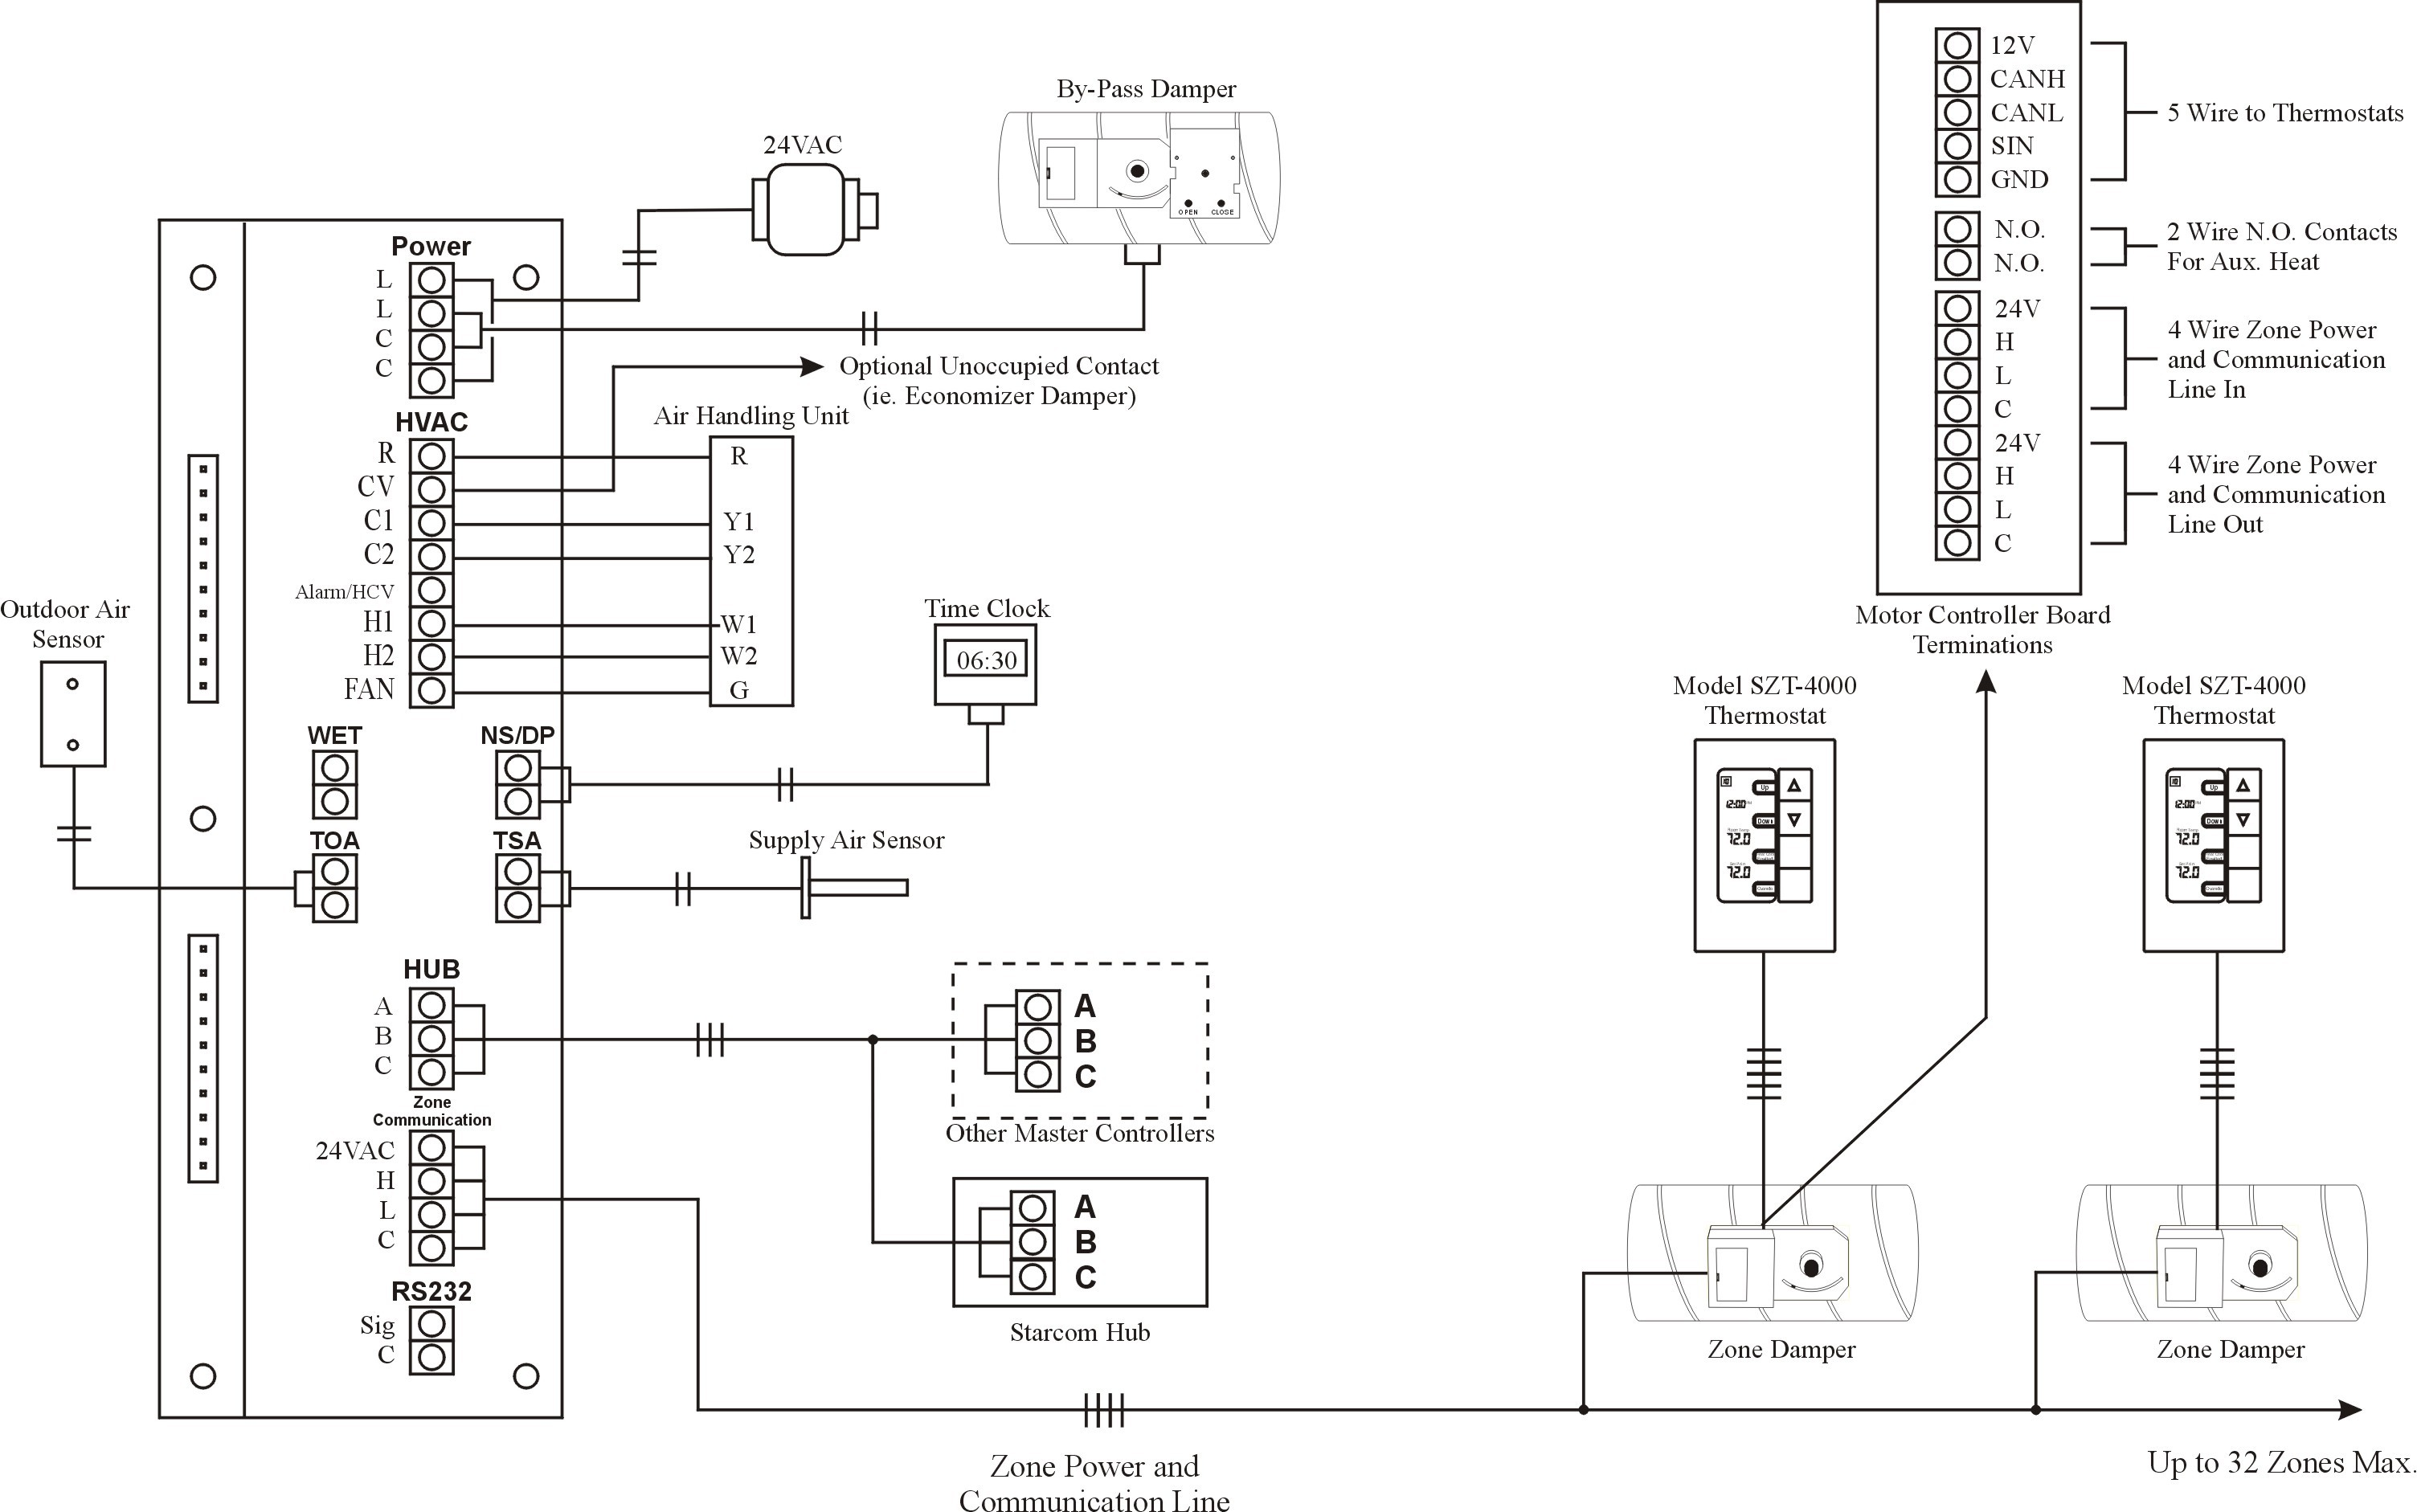 Fire Alarm System Wiring Diagram Fire Alarm Systems Wiring Diagrams Diagram and Pdf Wellread Of Fire Alarm System Wiring Diagram